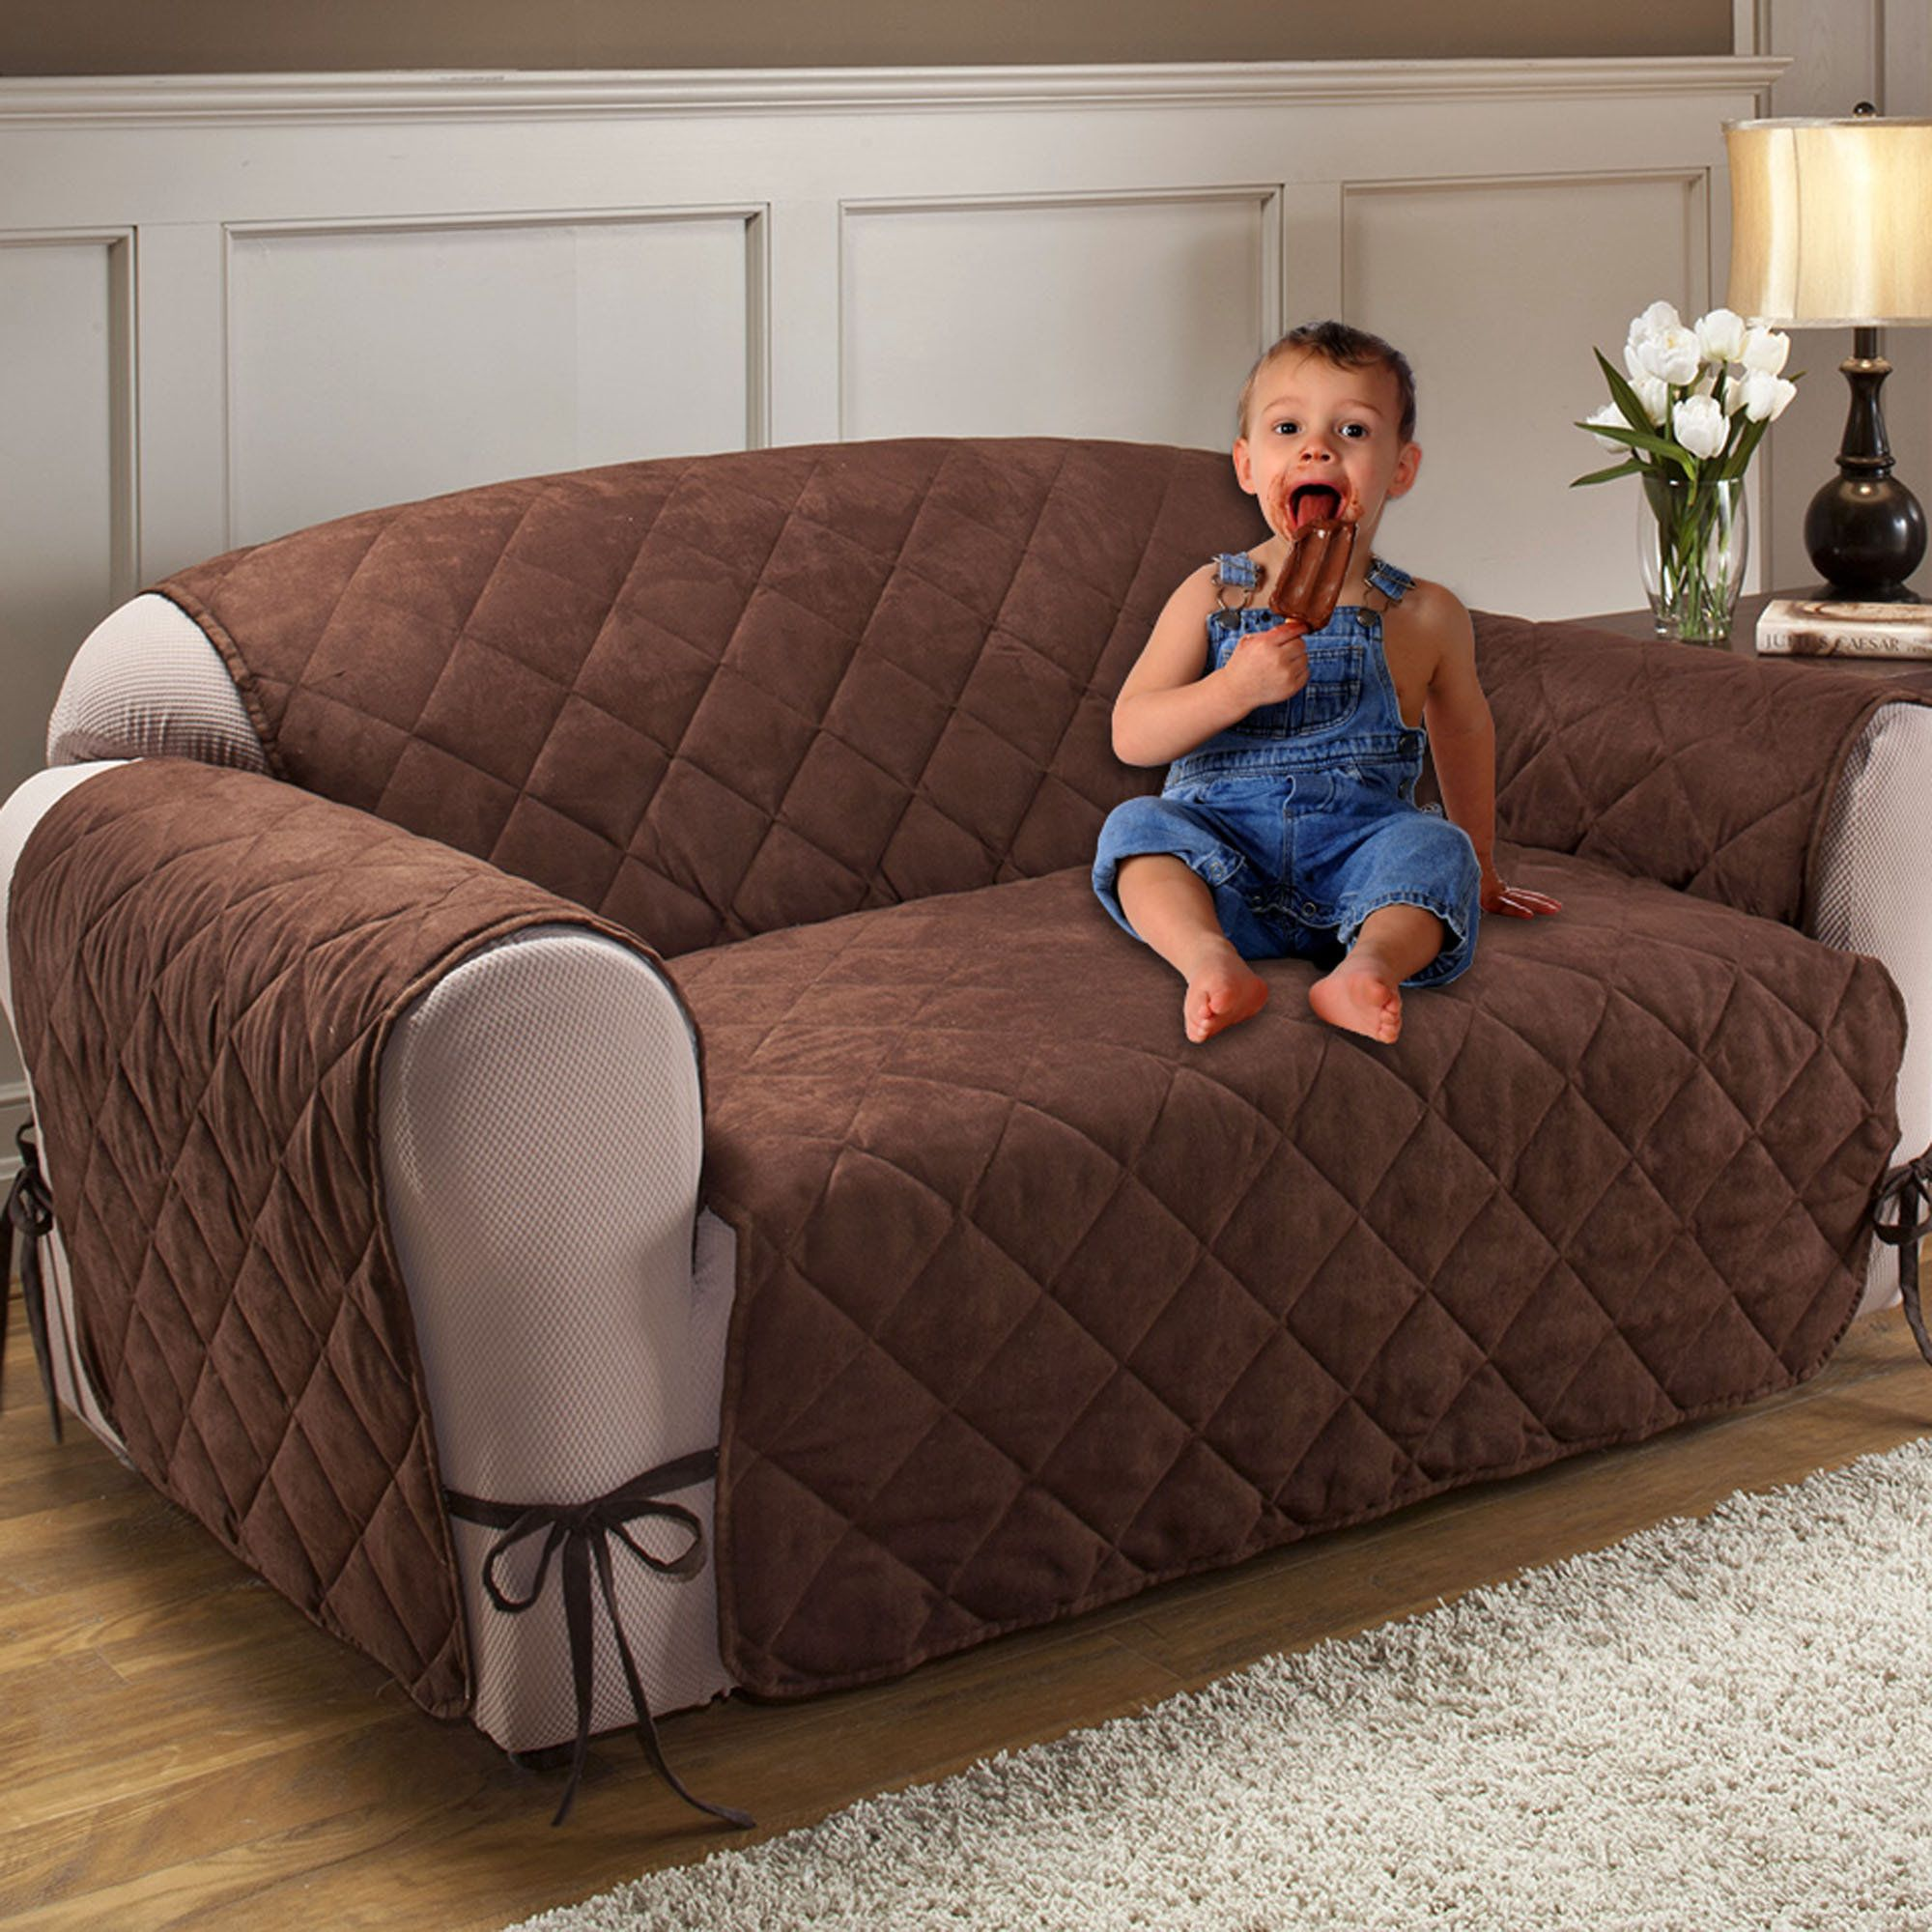 Cara Membuat Sofa Bed Sendiri Quilted Microfiber Total Furniture Cover With Ties Machine